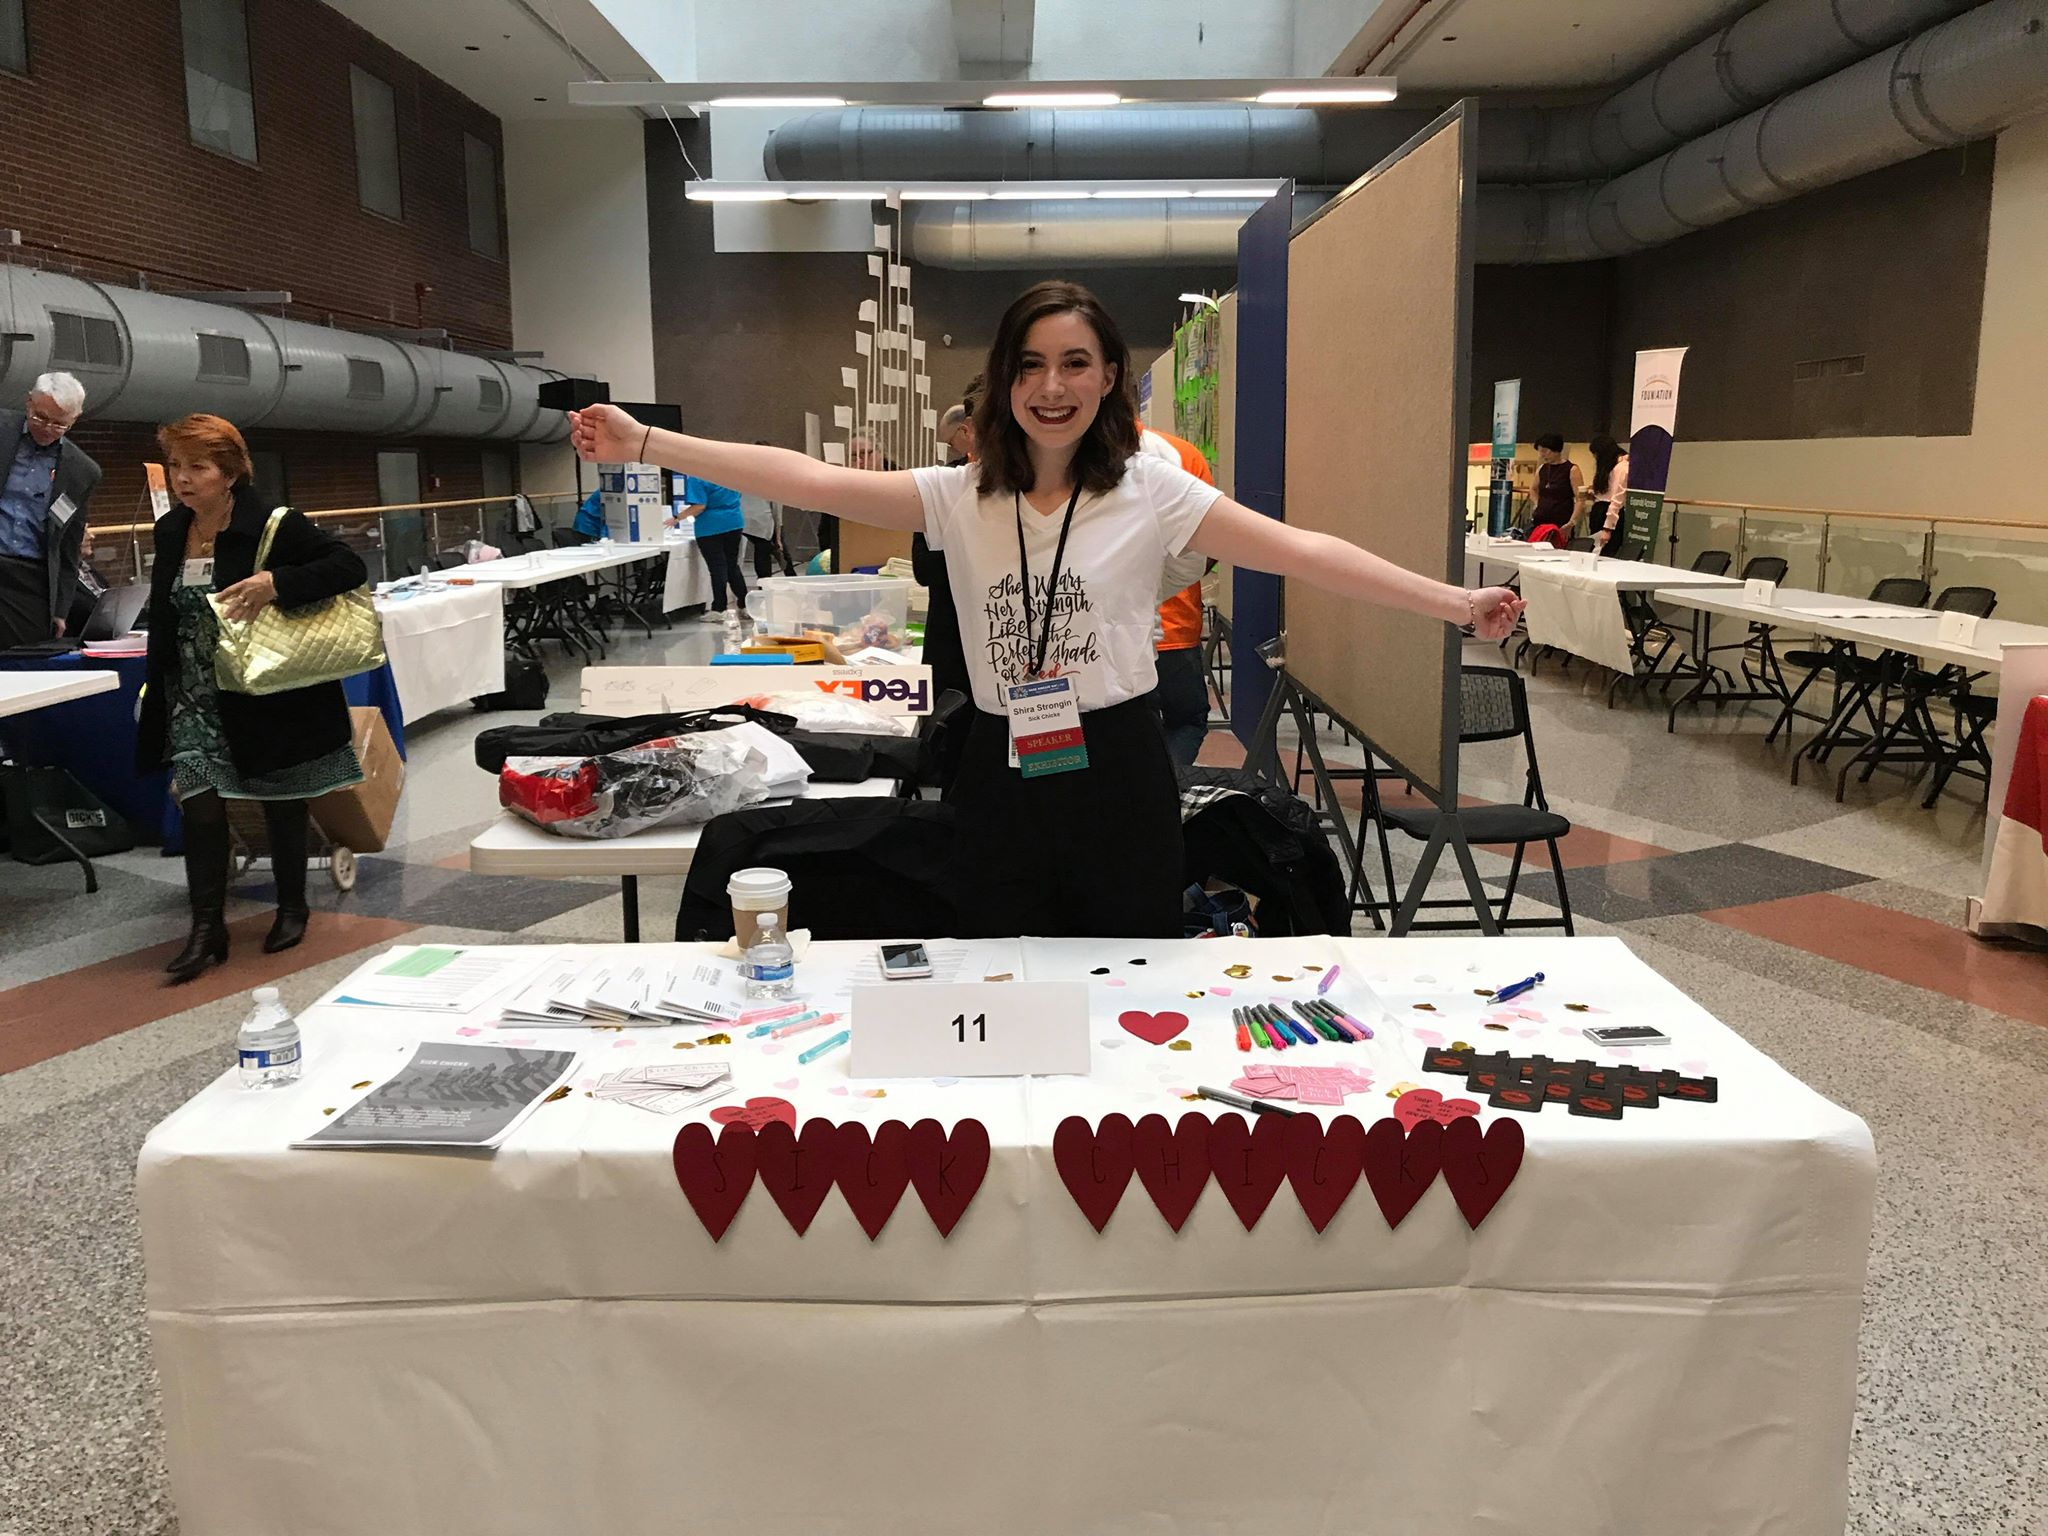 """[Image description: Shira is wearing a white printed T shirt with her arms extended smiling at the camera. She is standing behind a table covered in a white table cloth with """"SICK CHICKS"""" written in red cutout hearts at the front of the table.]"""